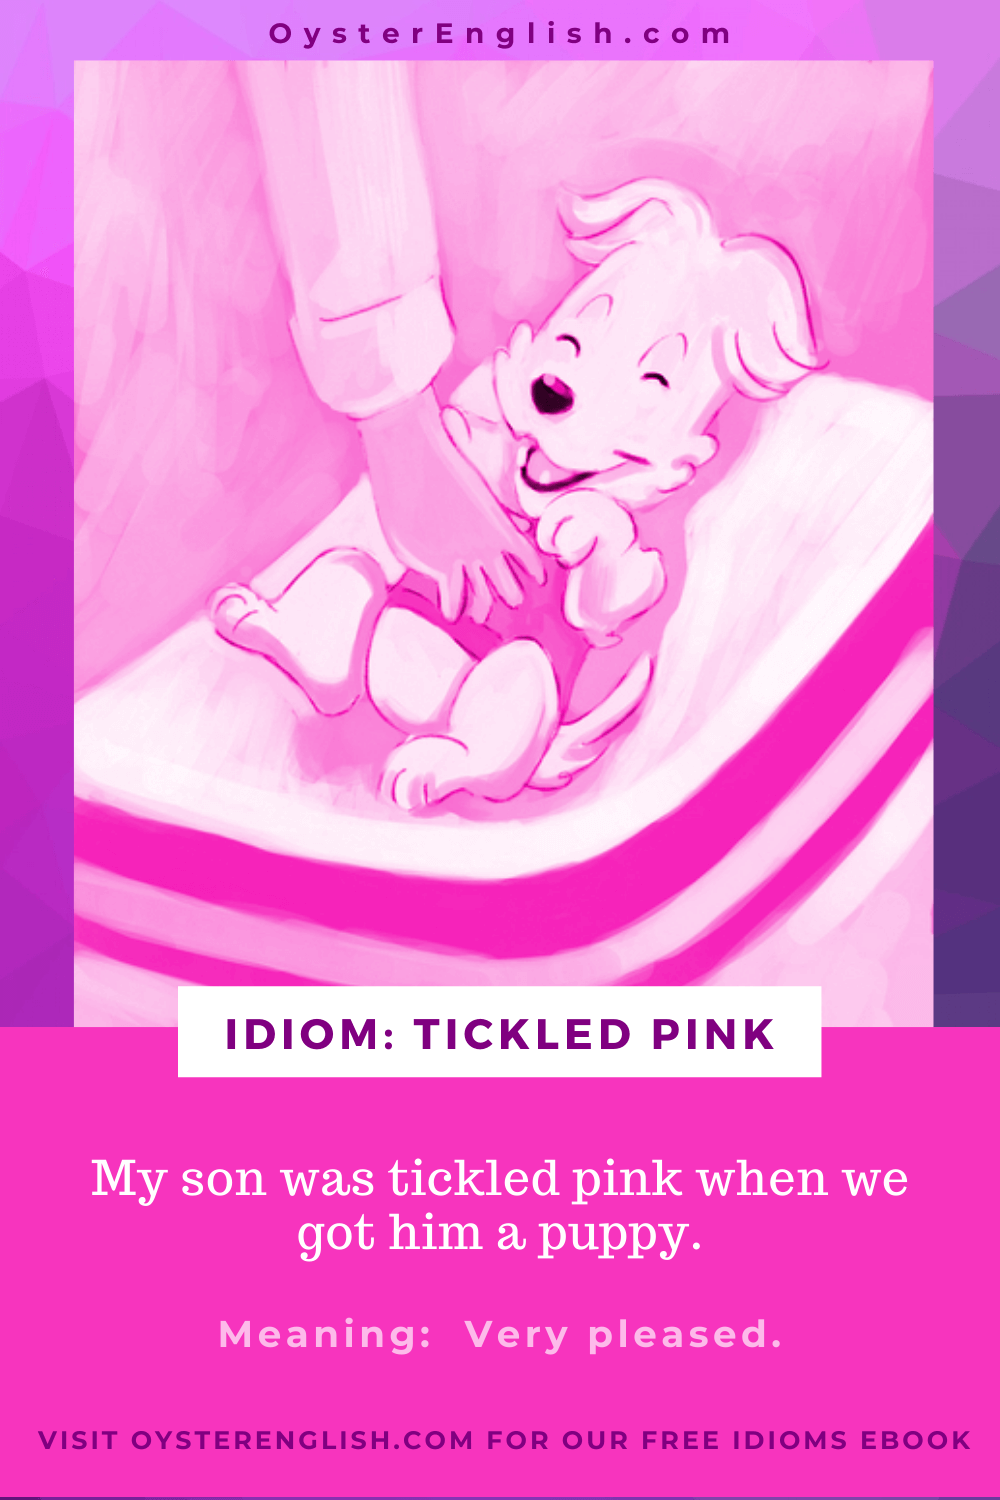 A pink colored image of hand tickling the stomach of a laughing puppy with the caption: